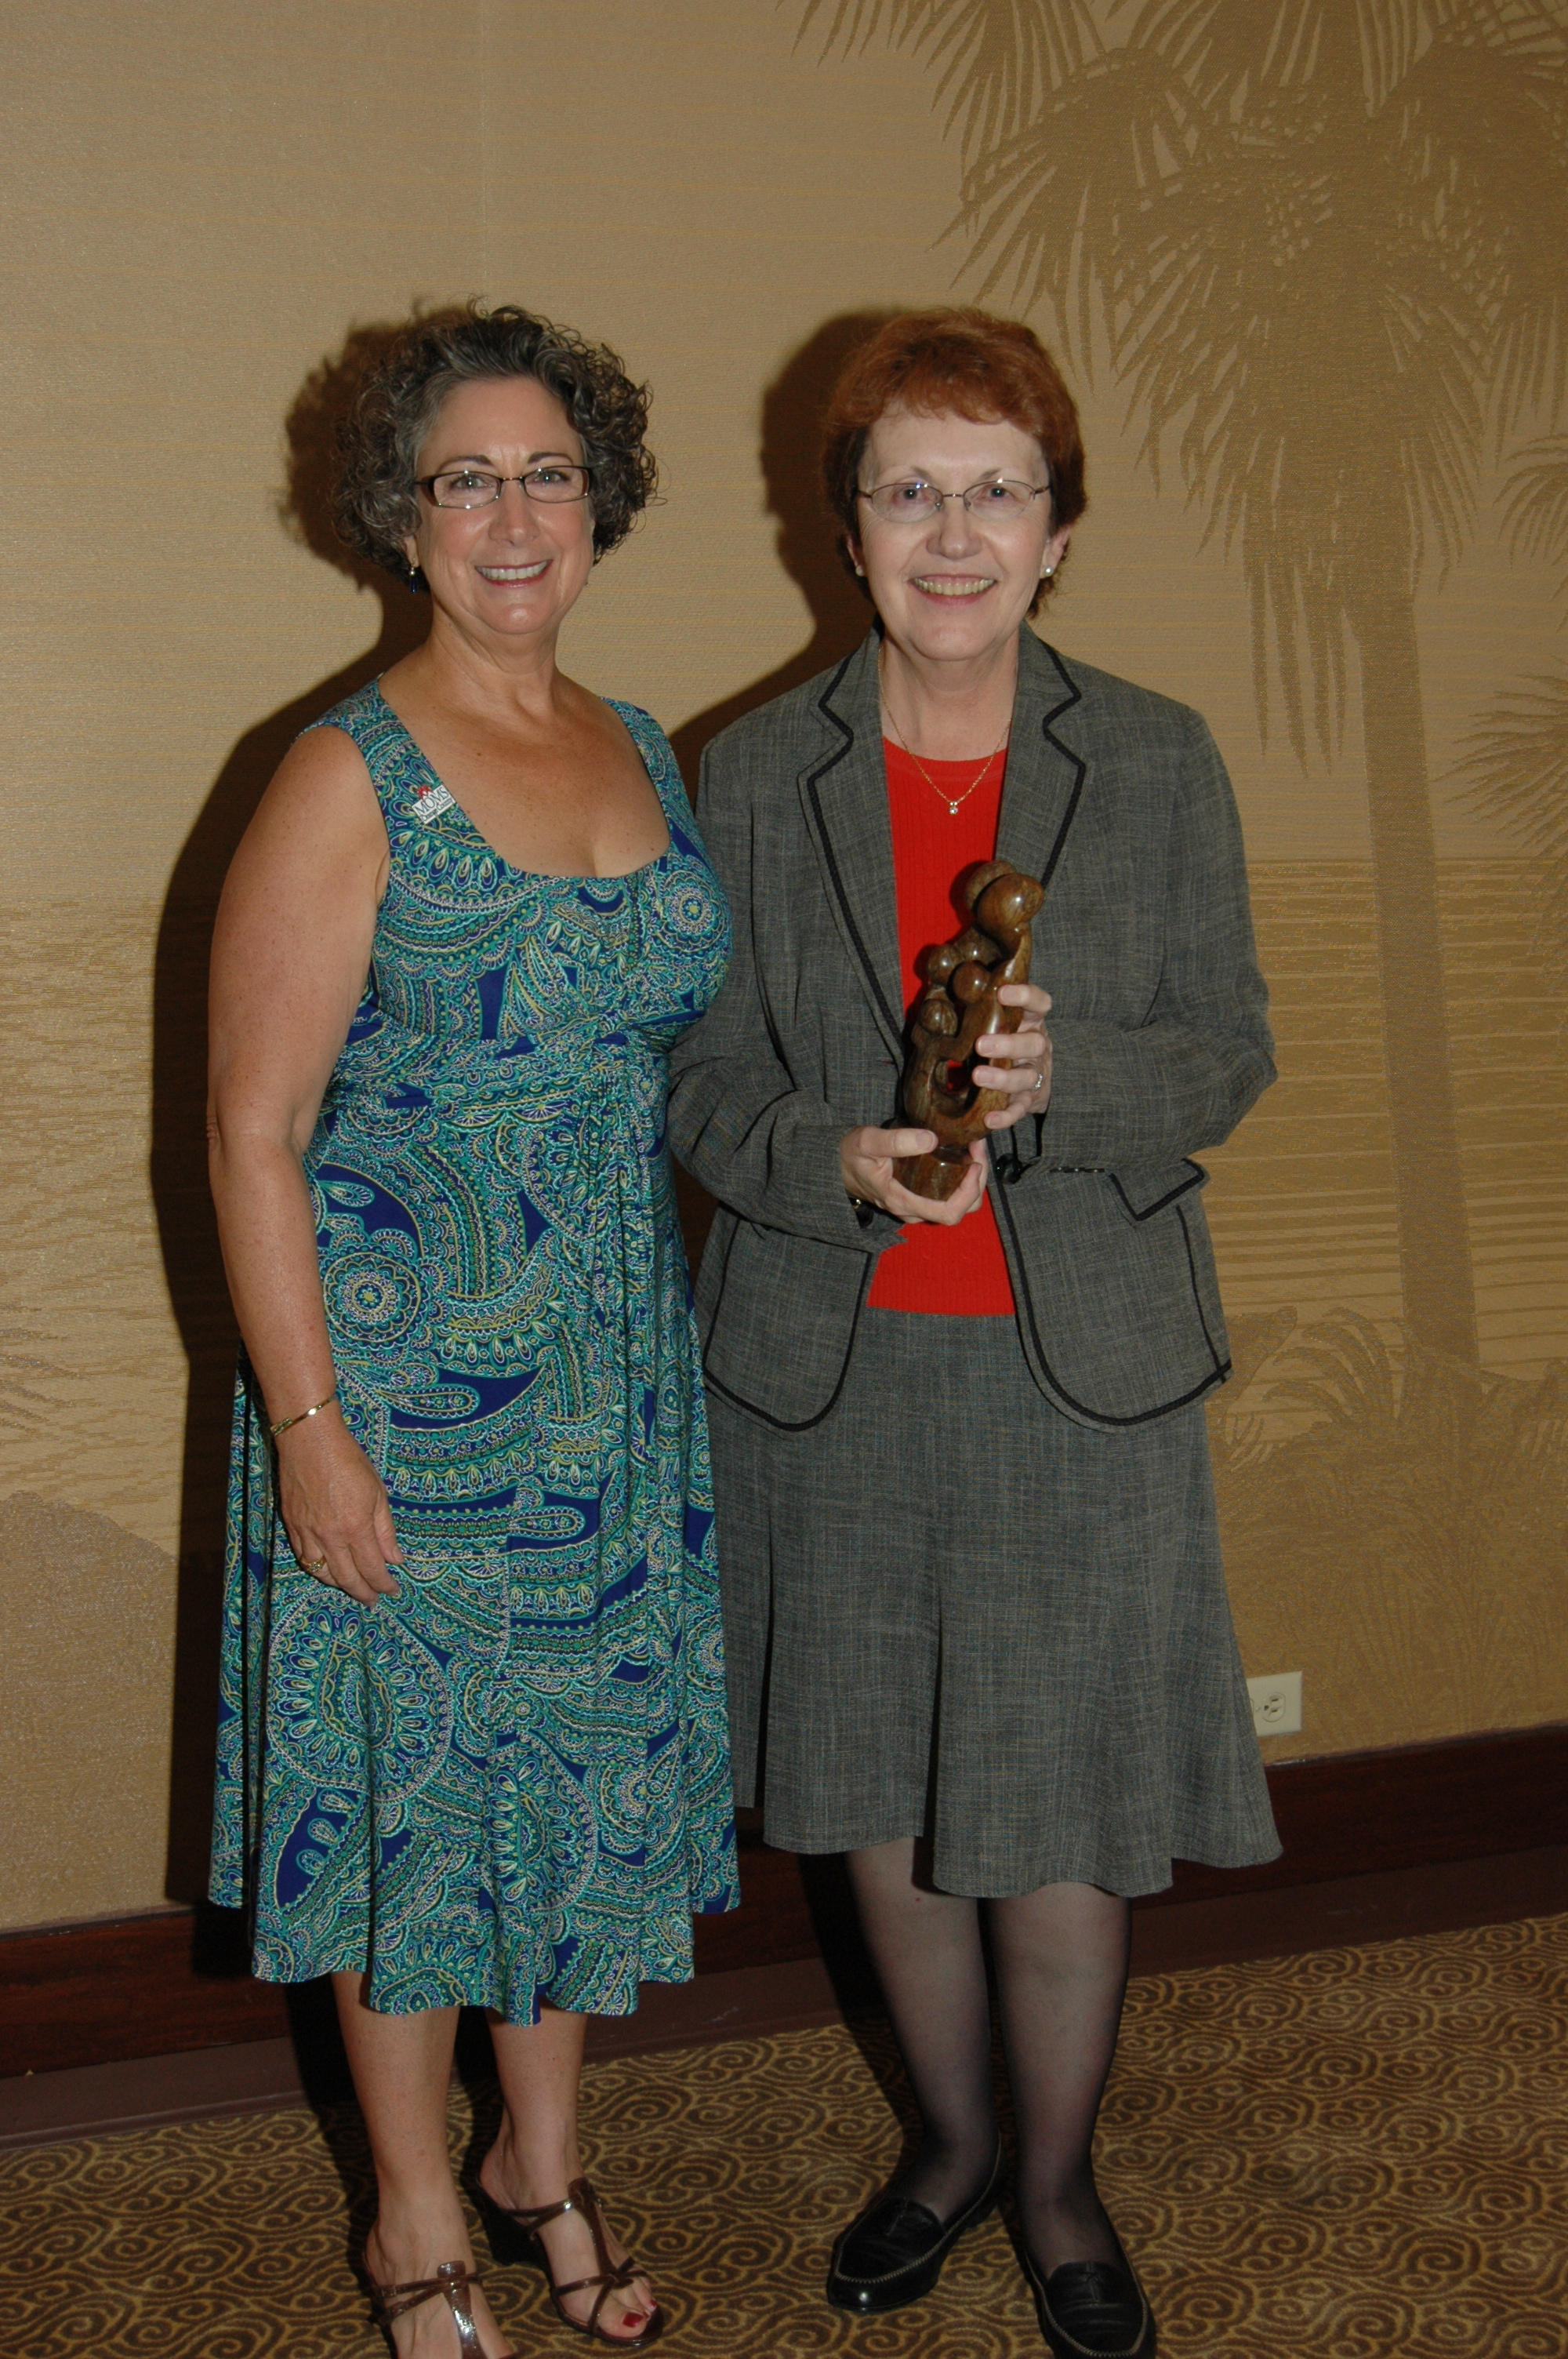 St. Joseph Health System, Recipient of the Corporate Humanitarian Award